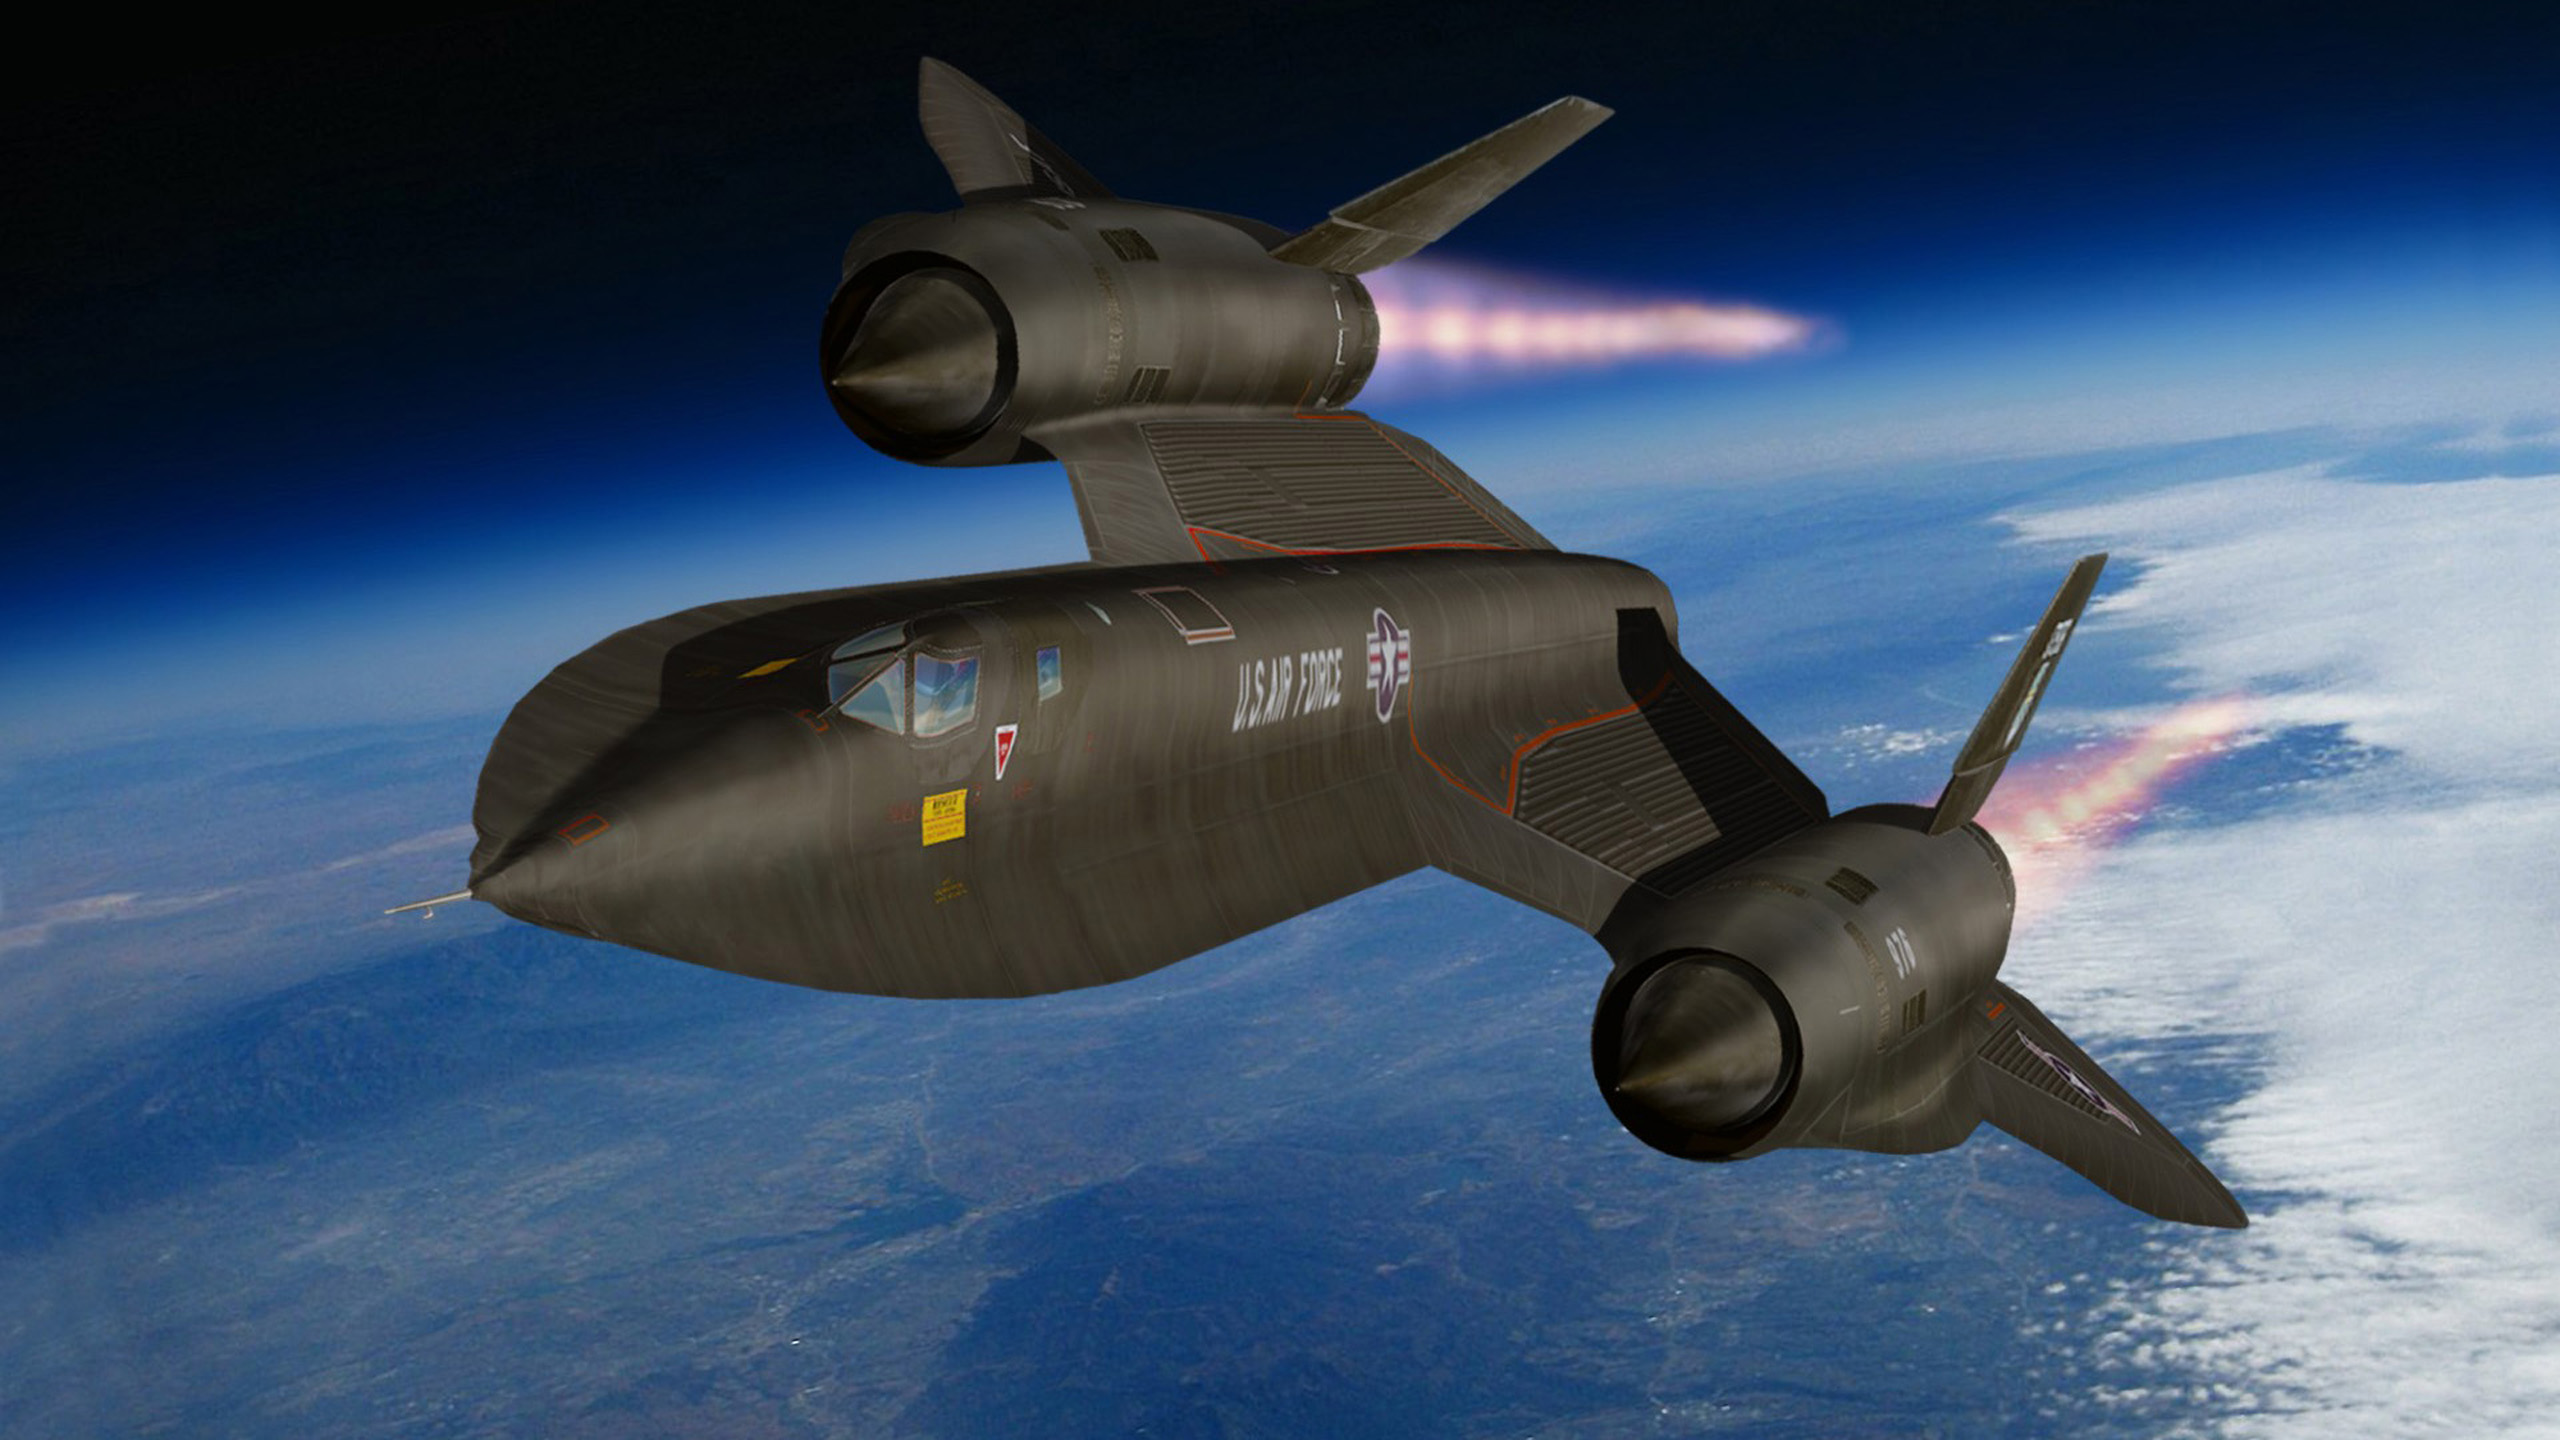 Sr 71 wallpaper pictures wallpapersafari - Sr 71 wallpaper ...